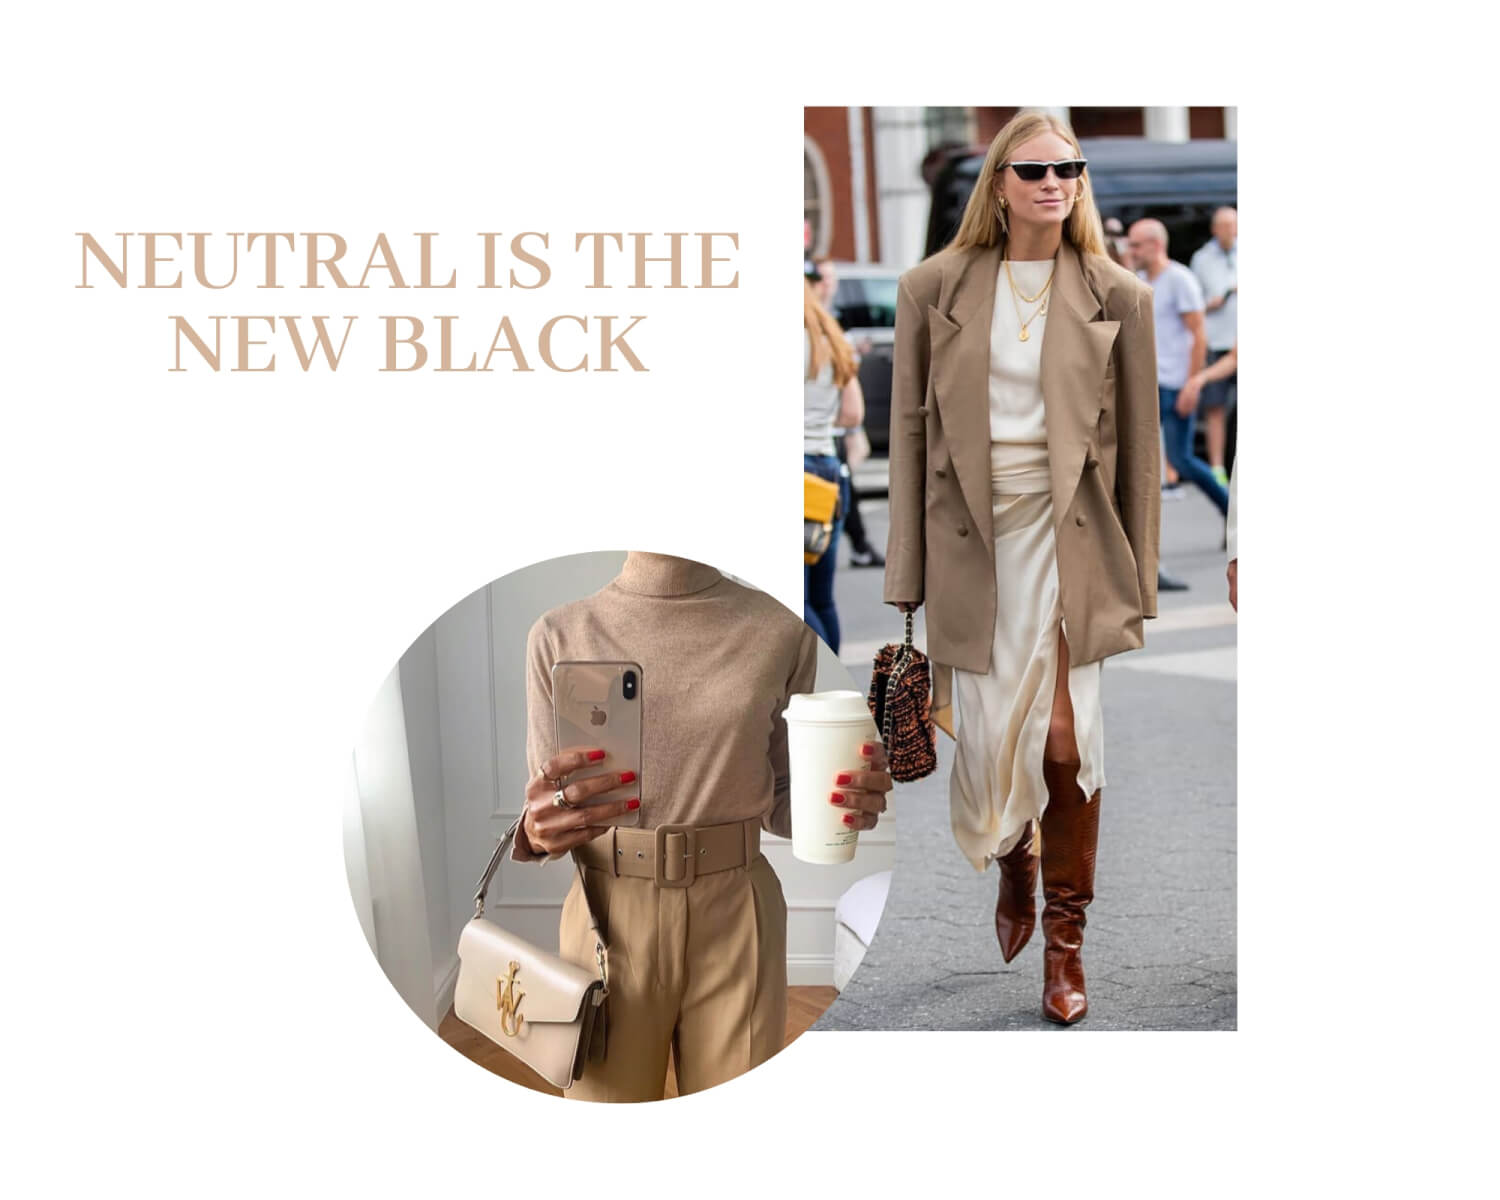 Neutral fashion trend